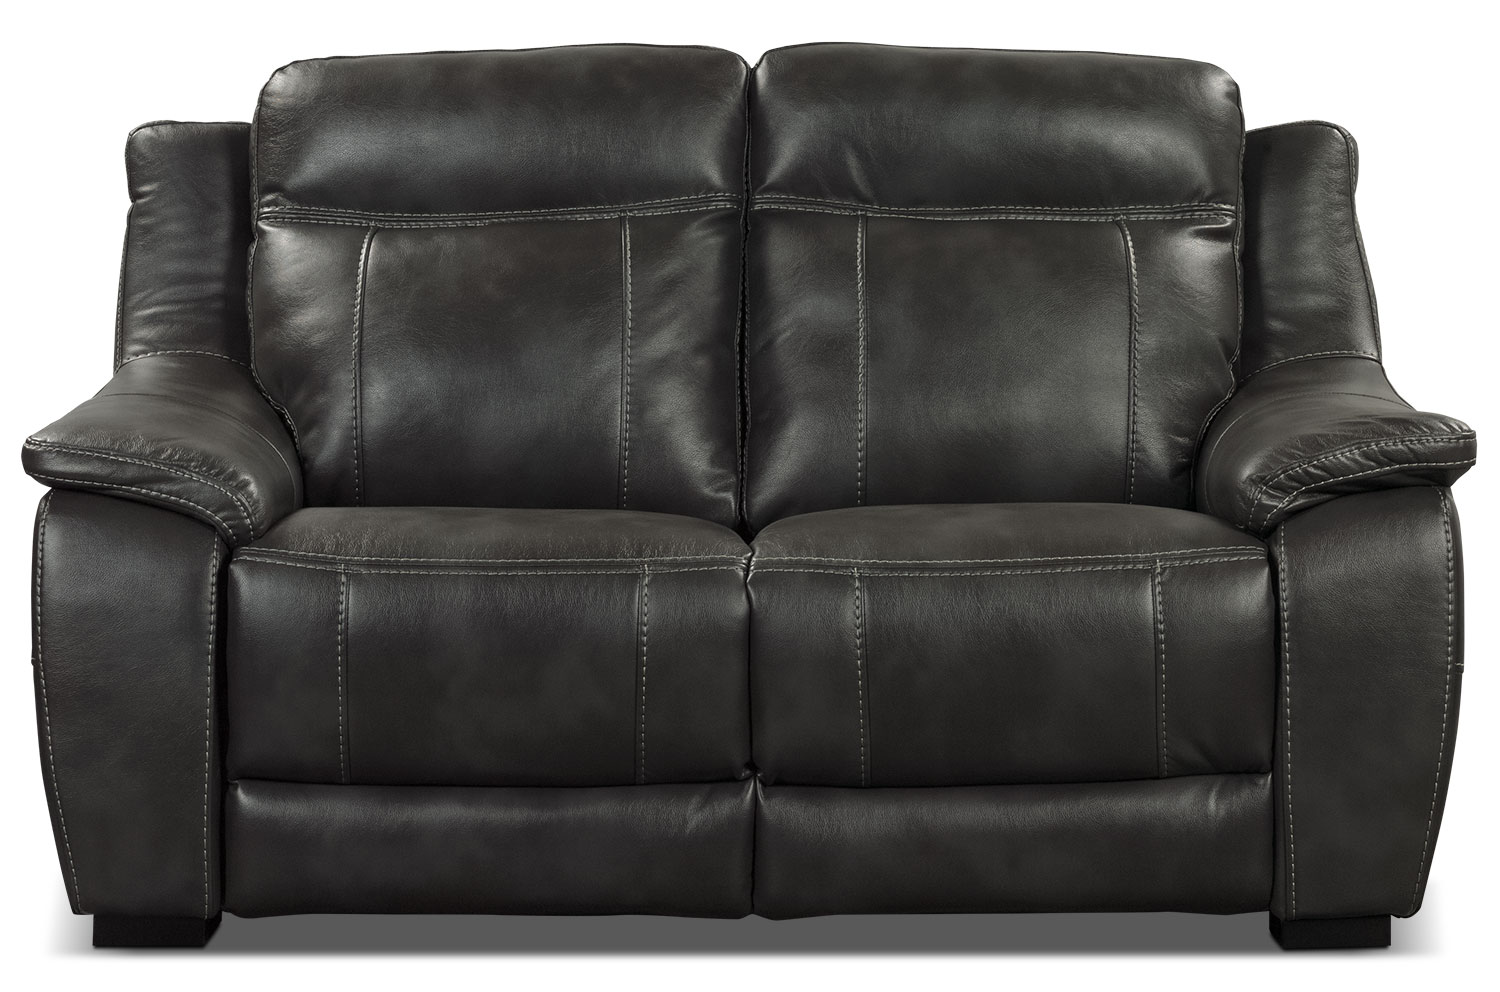 Living Room Furniture - Novo Leather-Look Fabric Loveseat – Grey